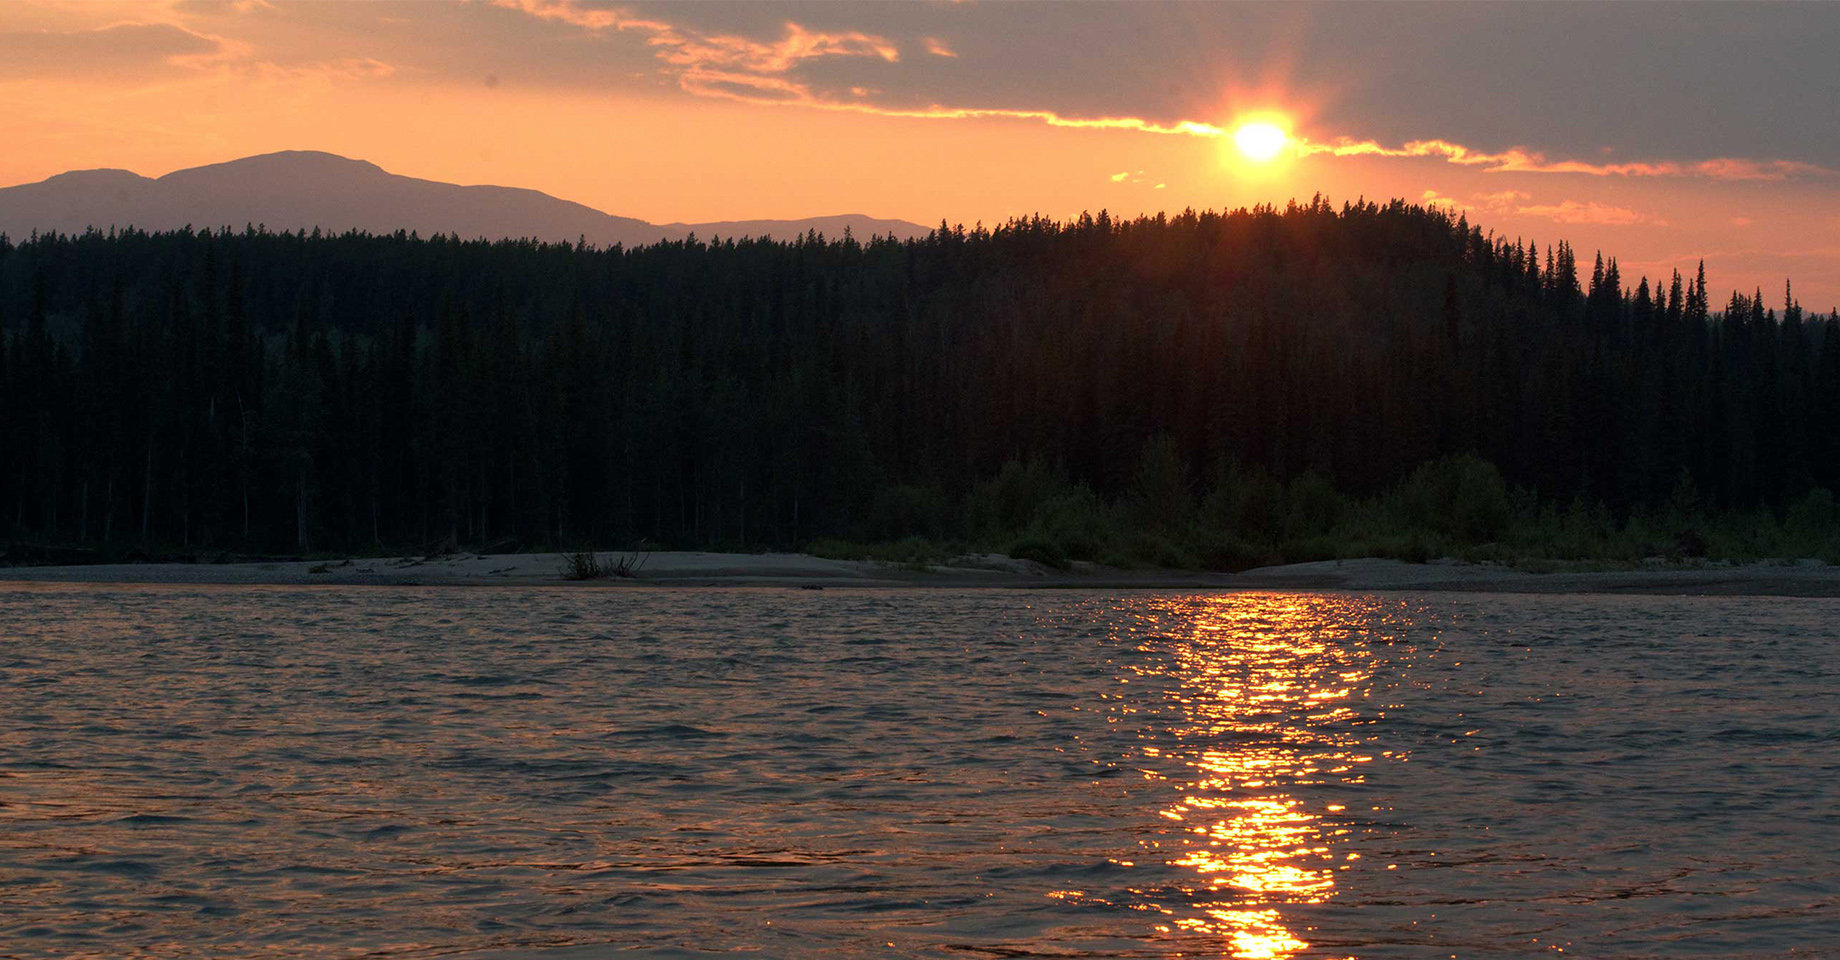 The Midnight Sun, almost setting over a lake in the Yukon.